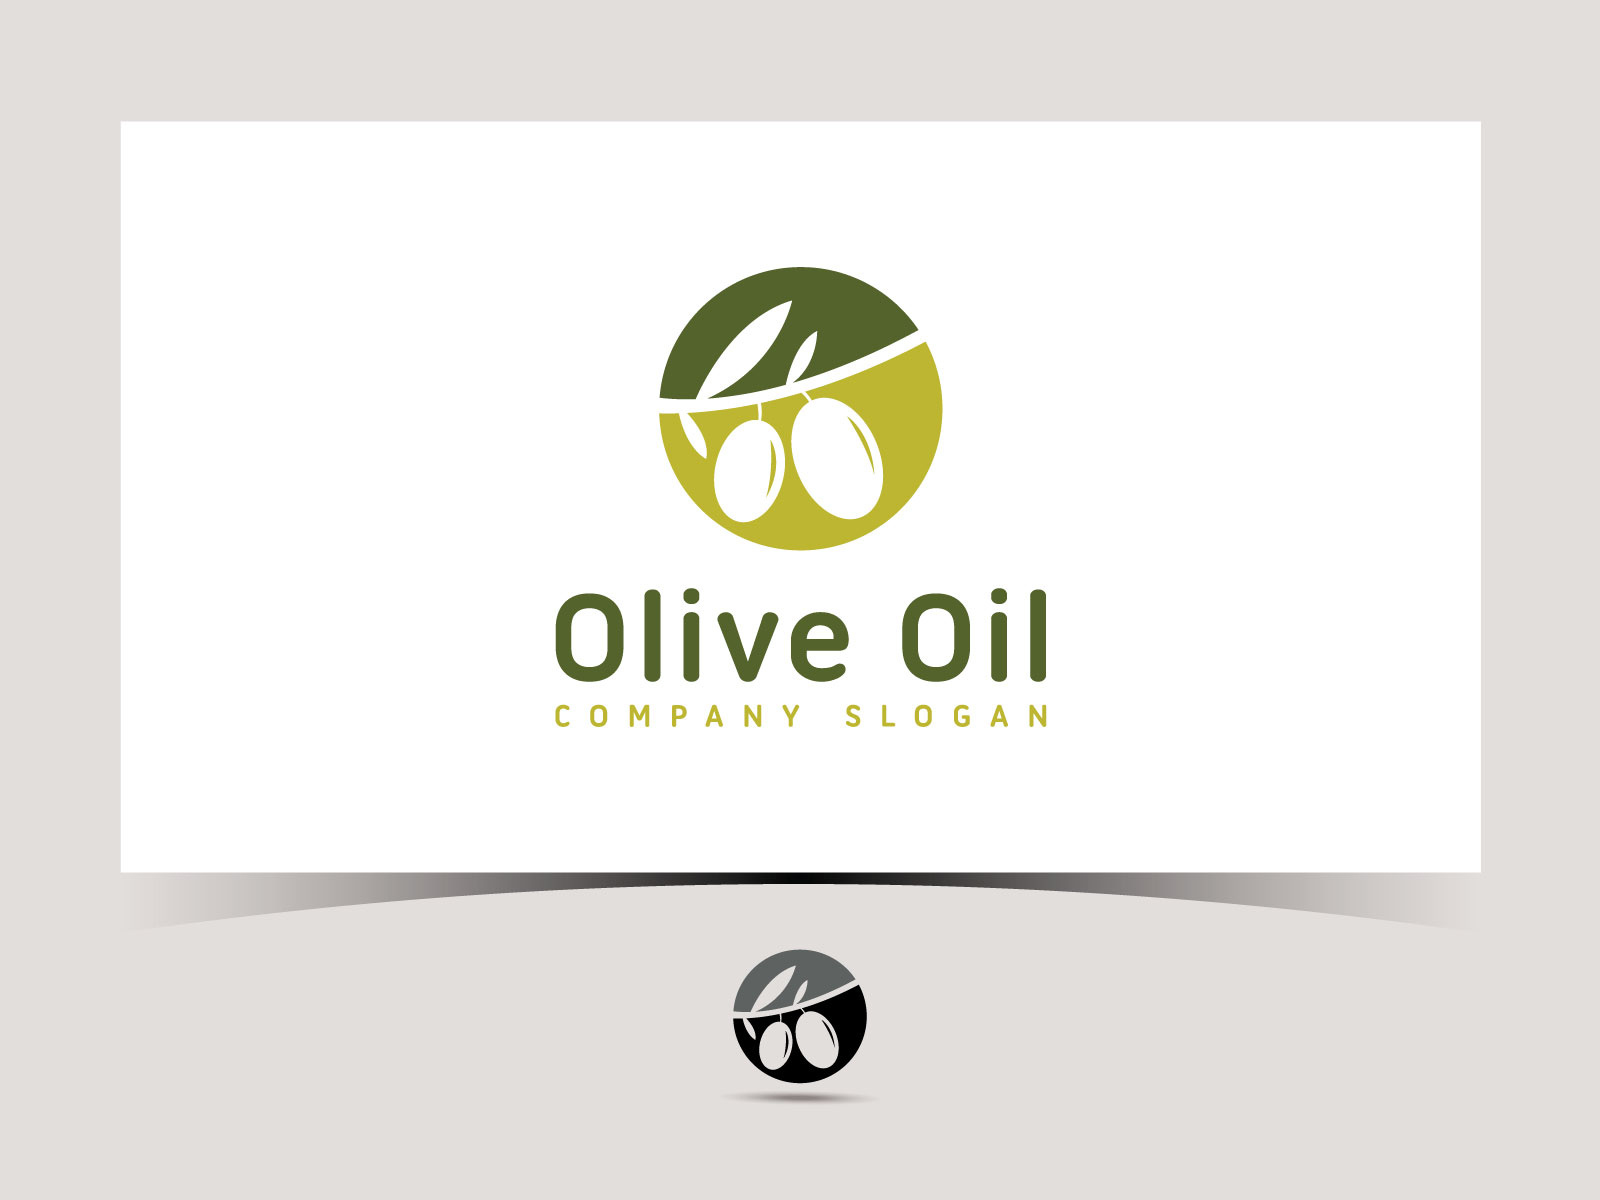 Olive oil vector logo design by Graph Squad on Dribbble.